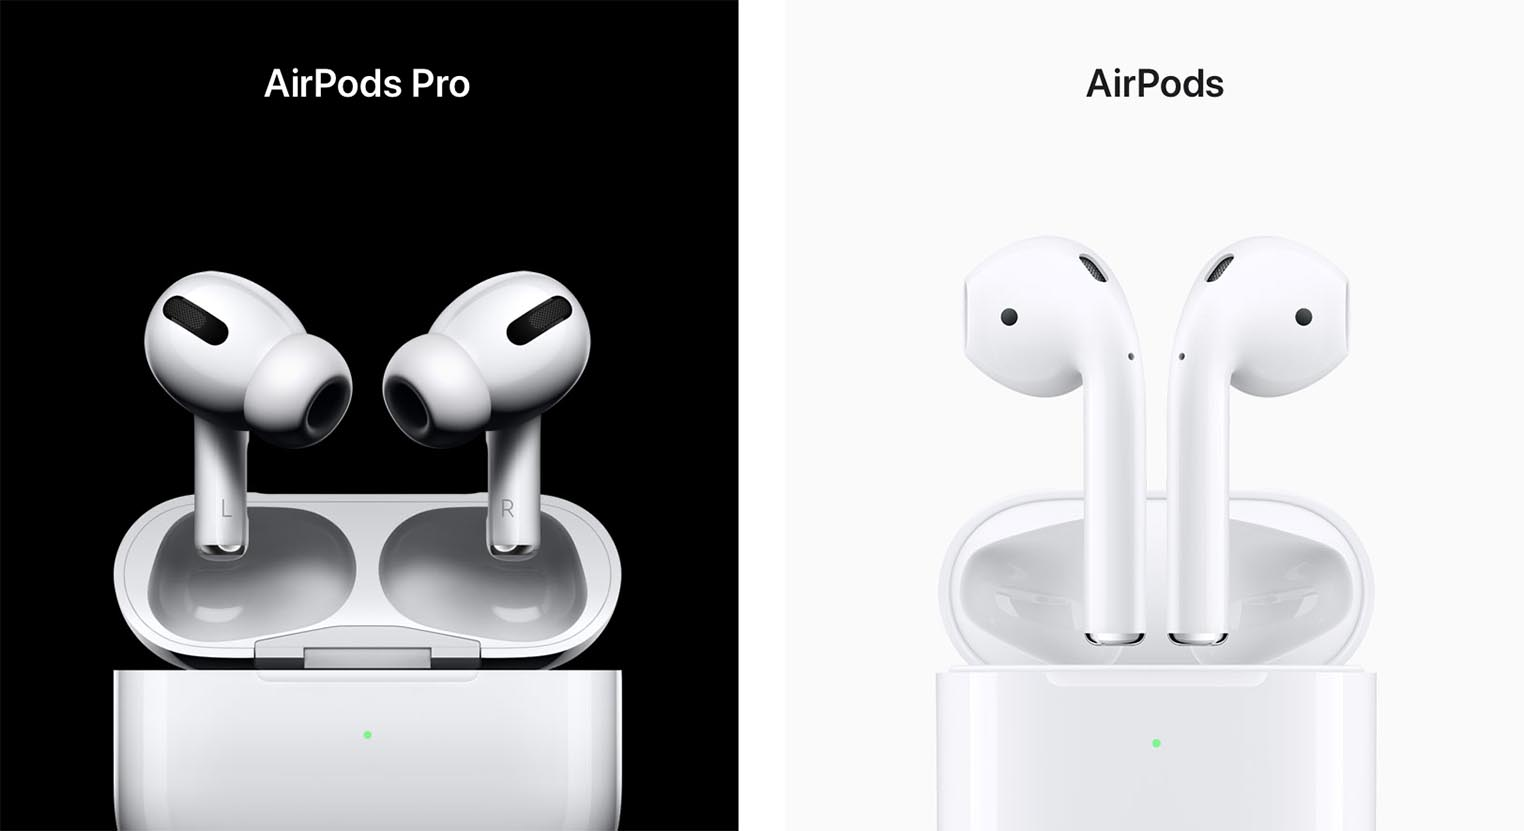 AirPods Pro AirPods